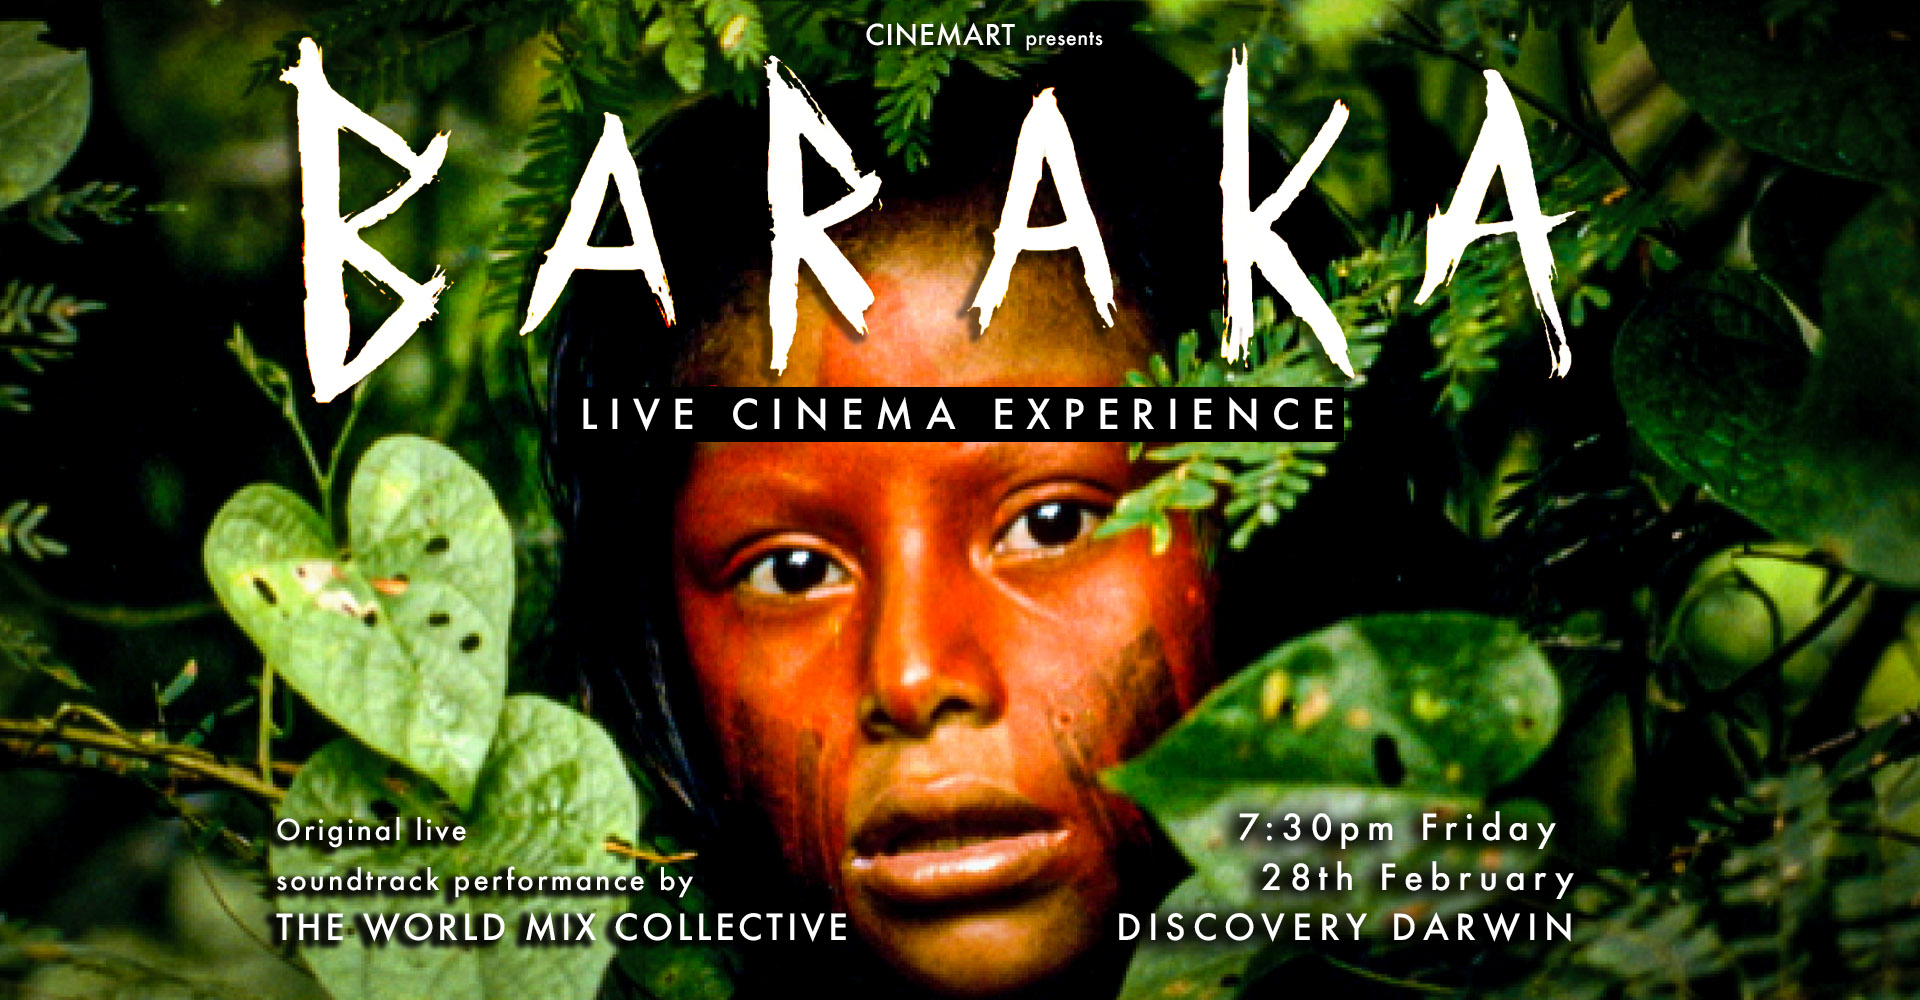 BARAKA - Amazon flyer 1